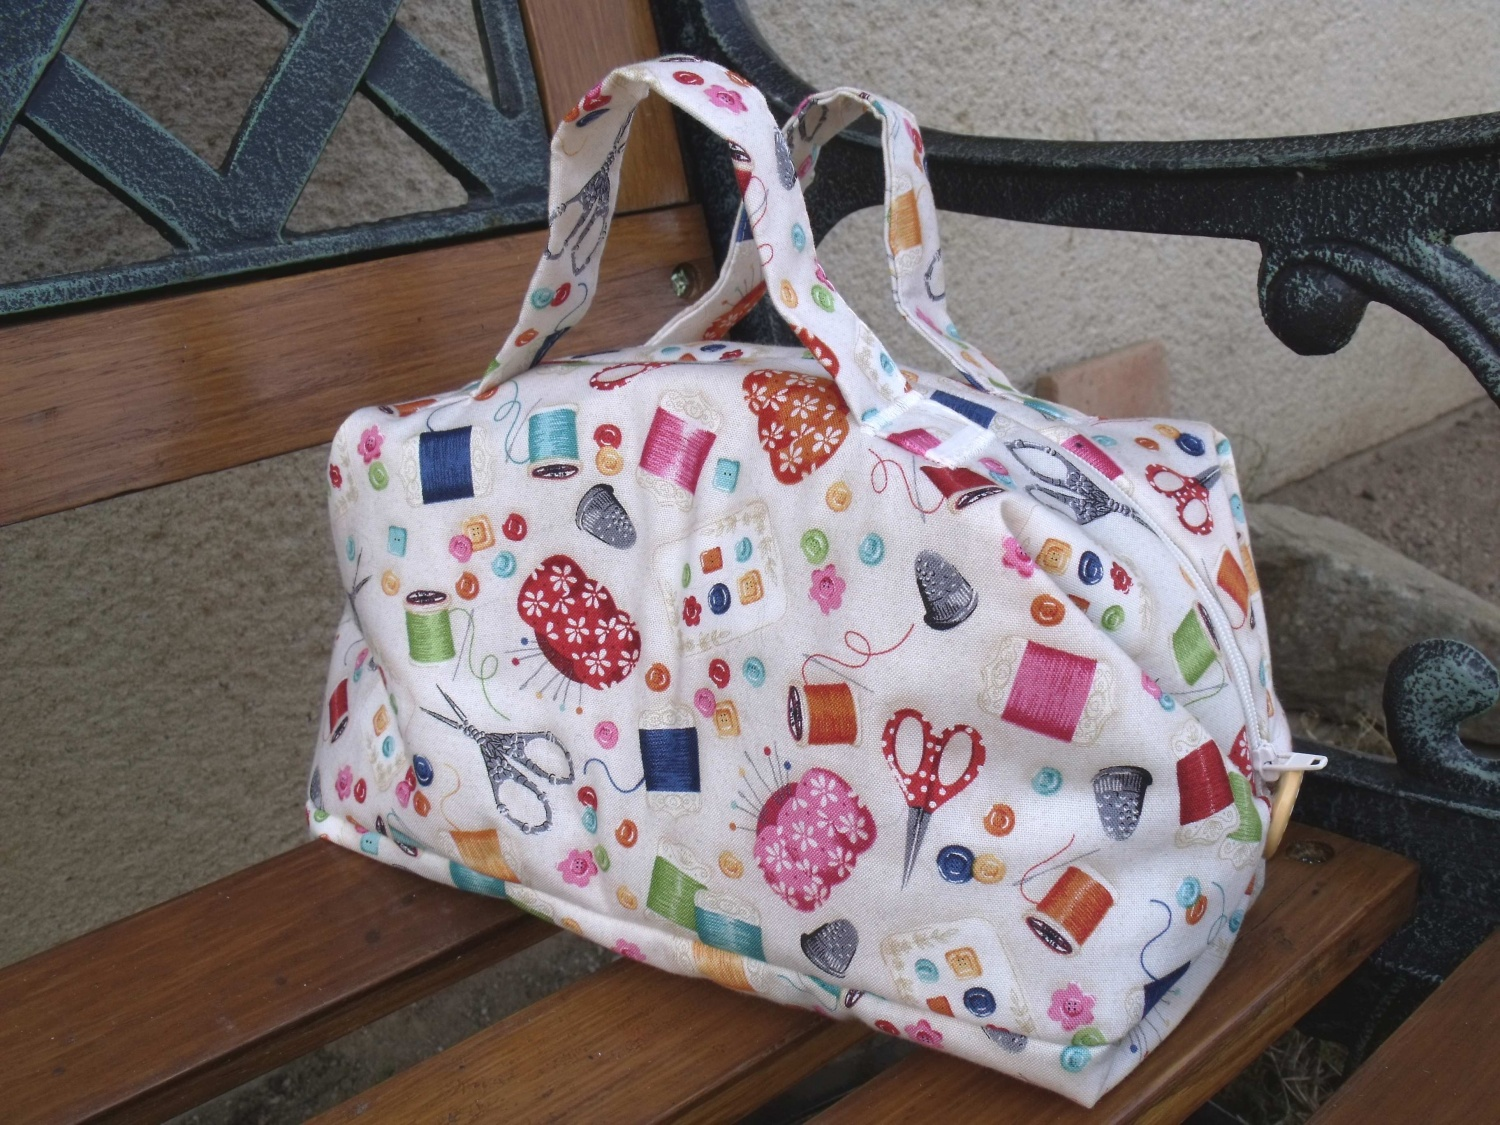 Sac valisette couture malalapatch for De couture en tissus